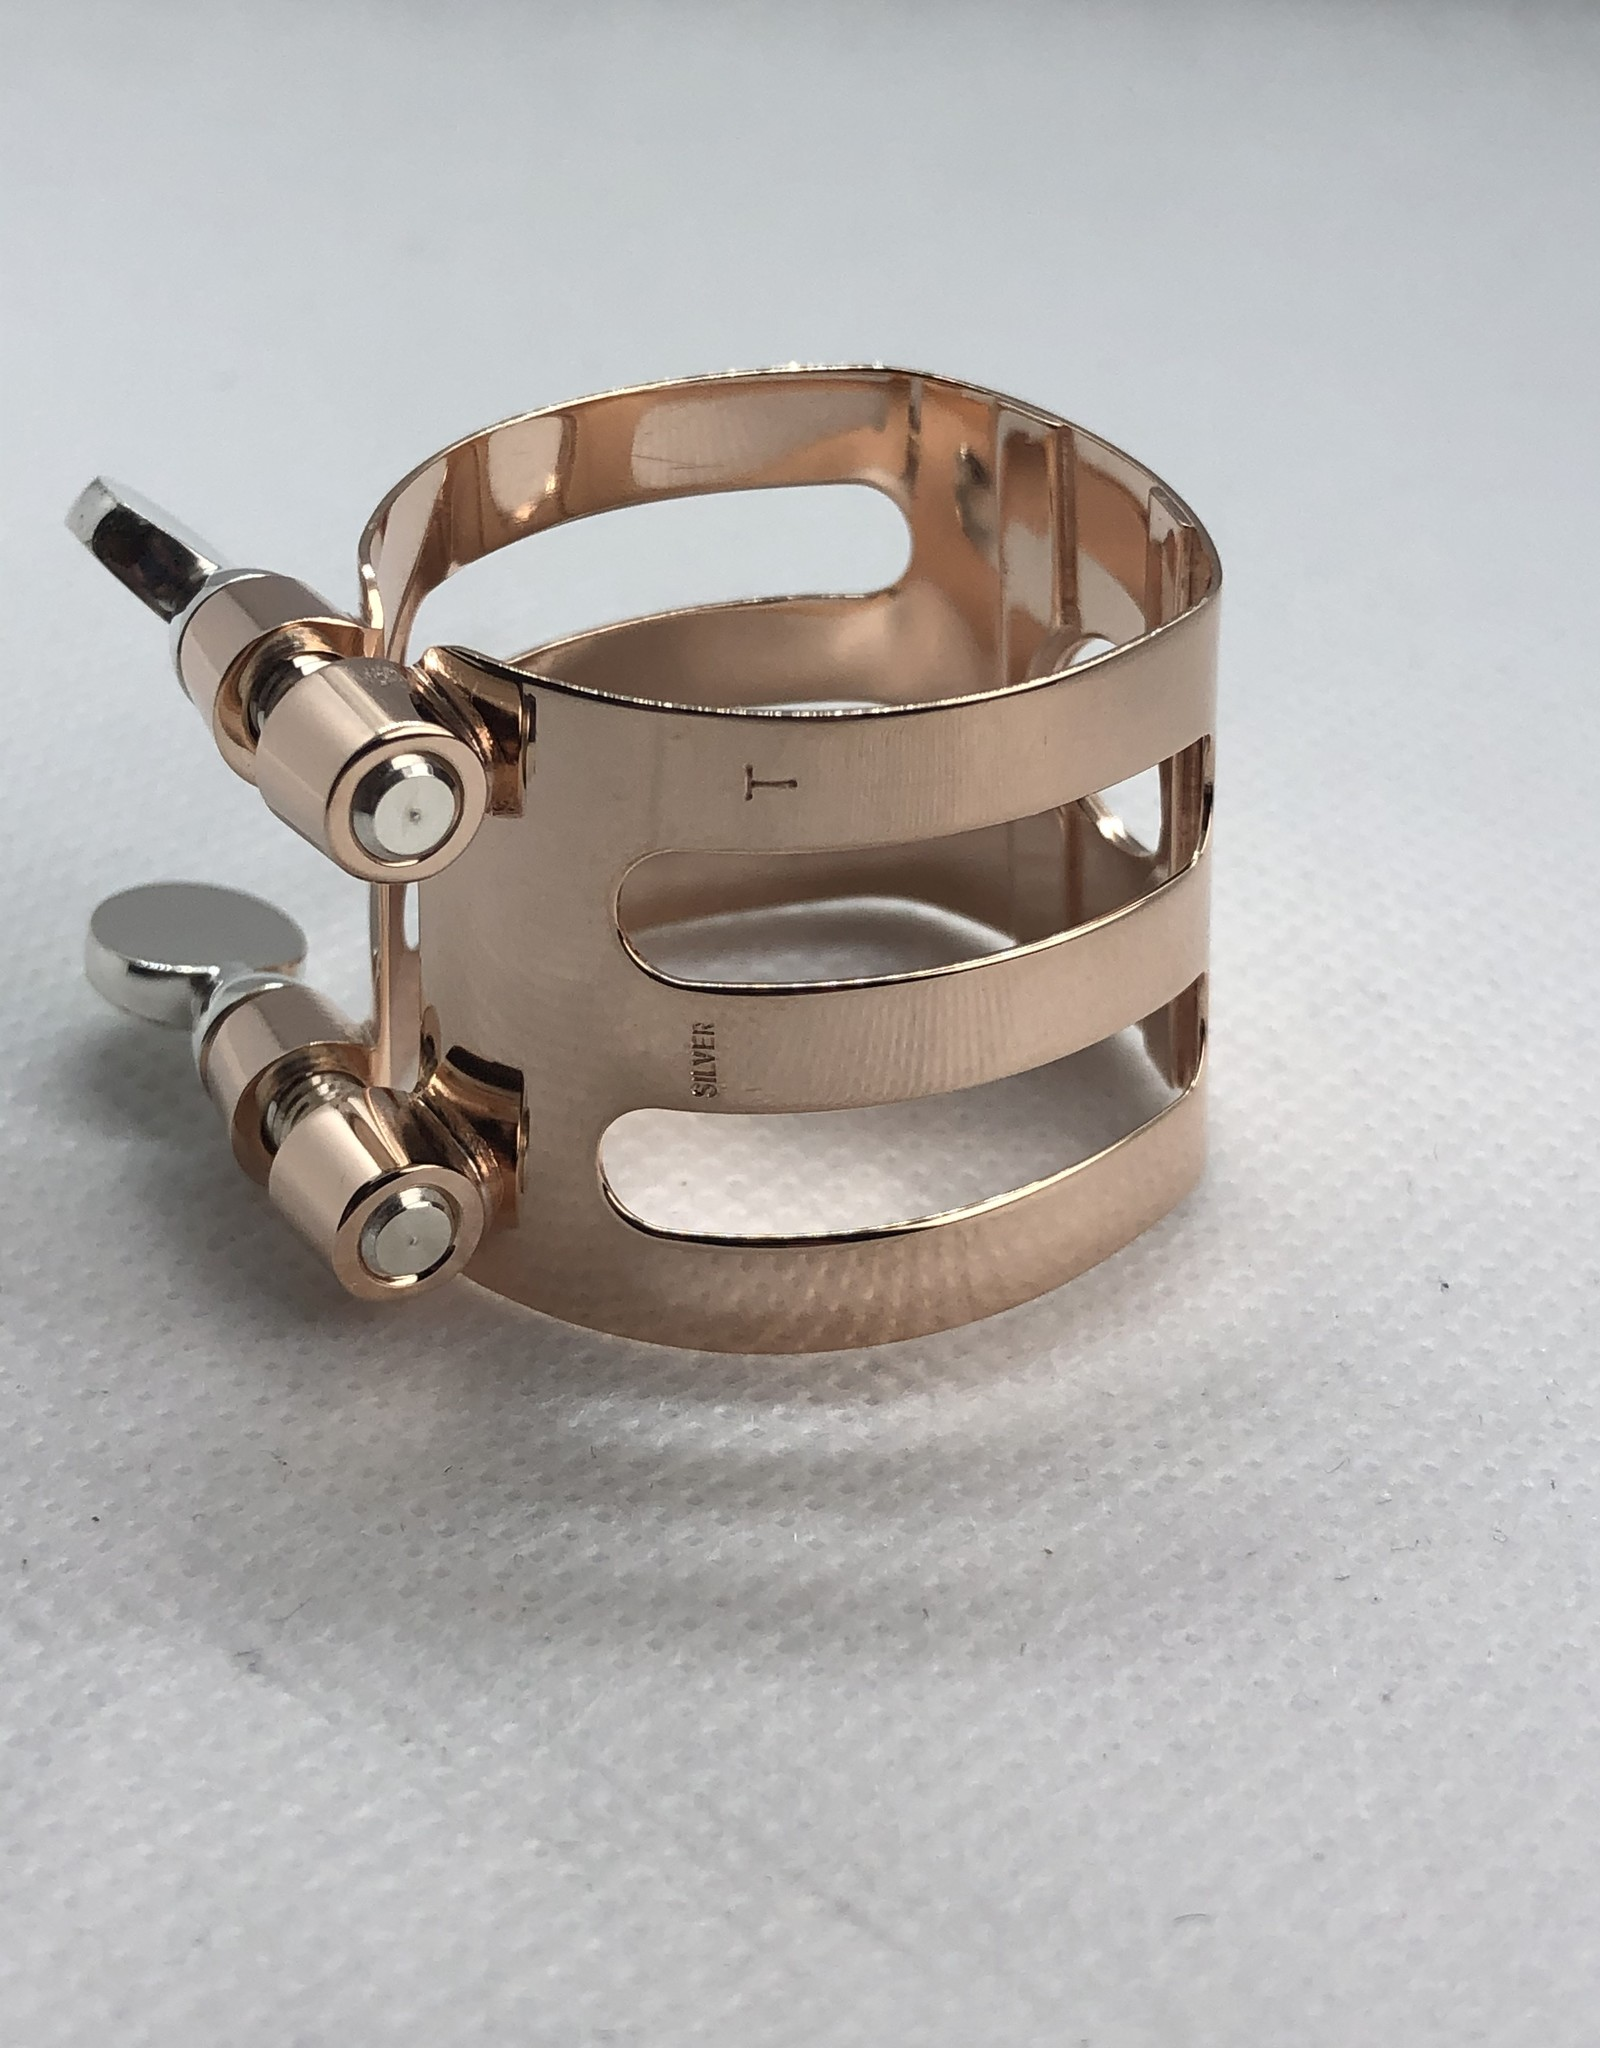 Ishimori Wood Stone Tenor Saxophone Metal Ligature for Selmer Rubber Mouthpiece Solid Silver with Pink Gold Plate